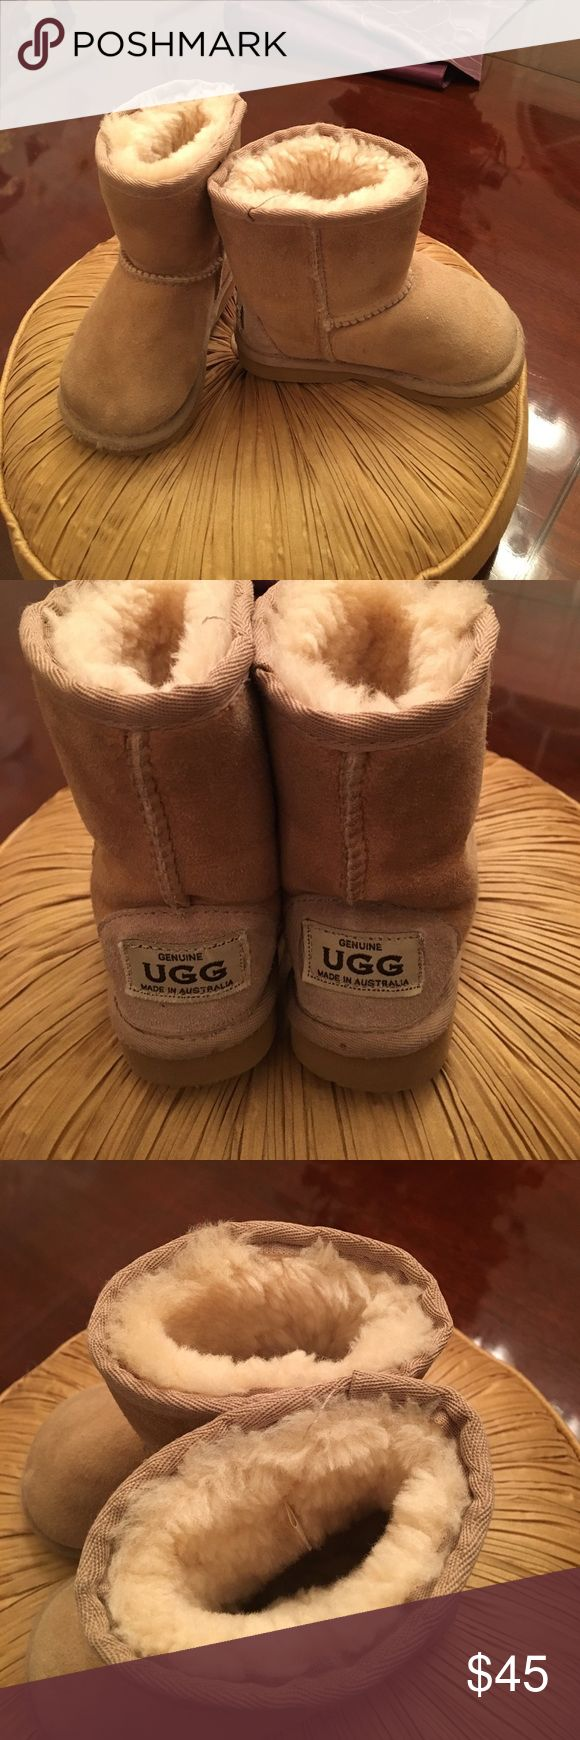 KIDS UGG BOOTS These boots are darling!!  They are in great shape, and will keep your little one comfy and warm.. not to mention cute and fashionable !  They were purchased at a consignment store, so I can't verify authenticity . UGG Shoes Boots